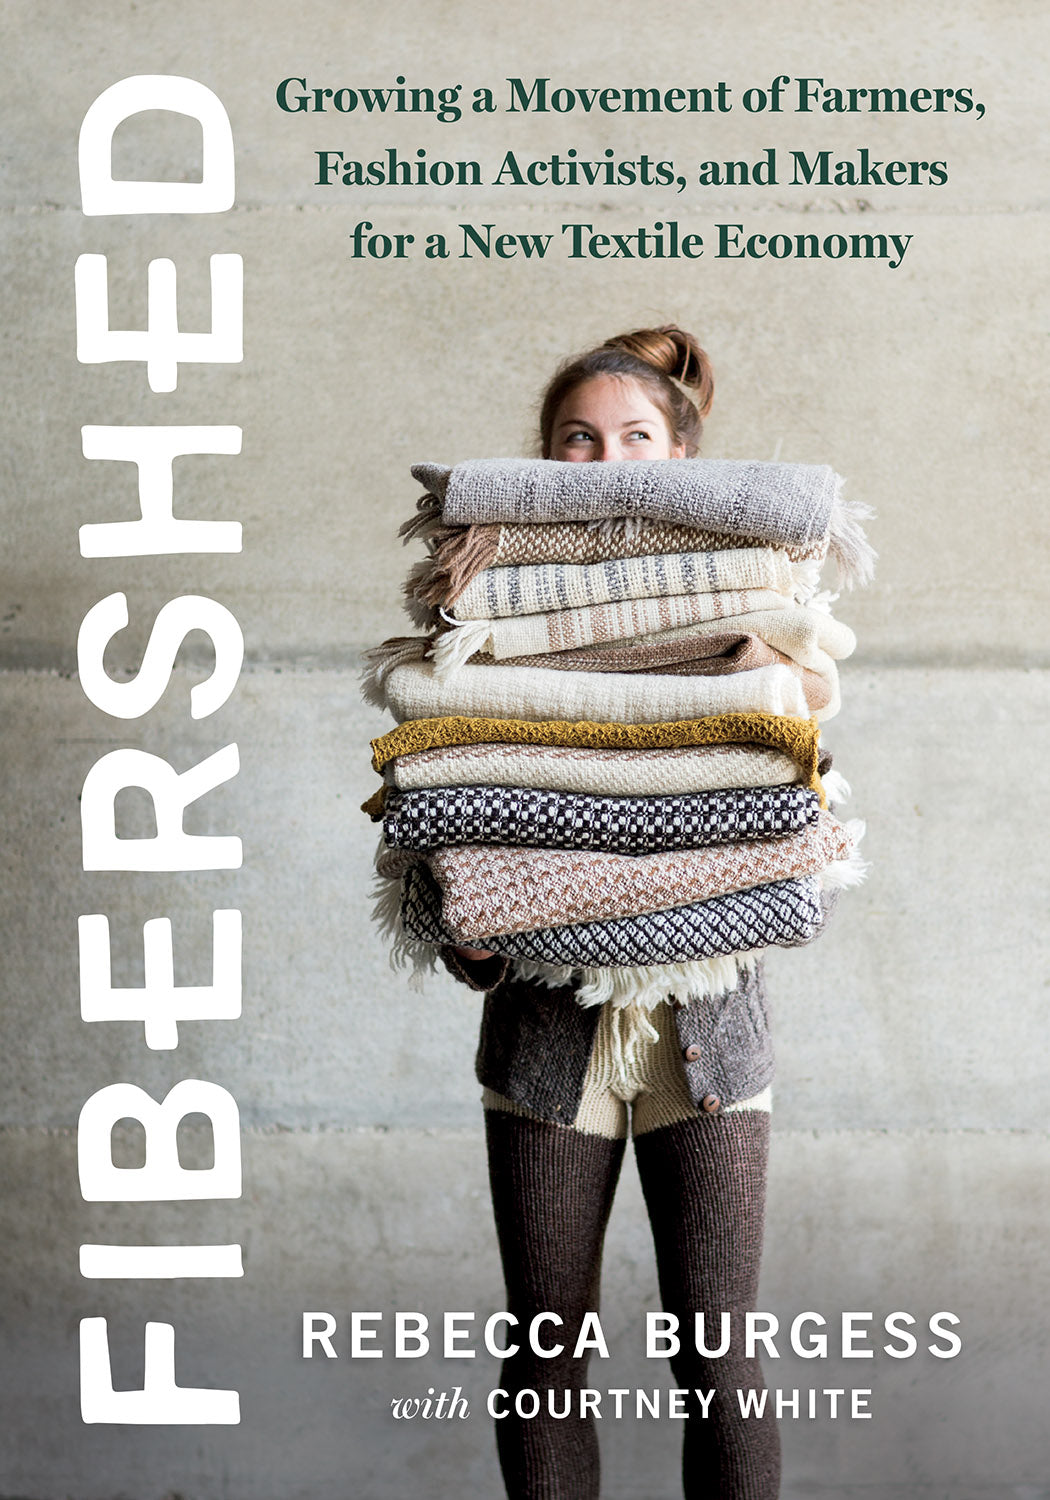 Fibershed Growing a Movement of Farmers, Fashion Activists, and Makers for a New Textile Economy